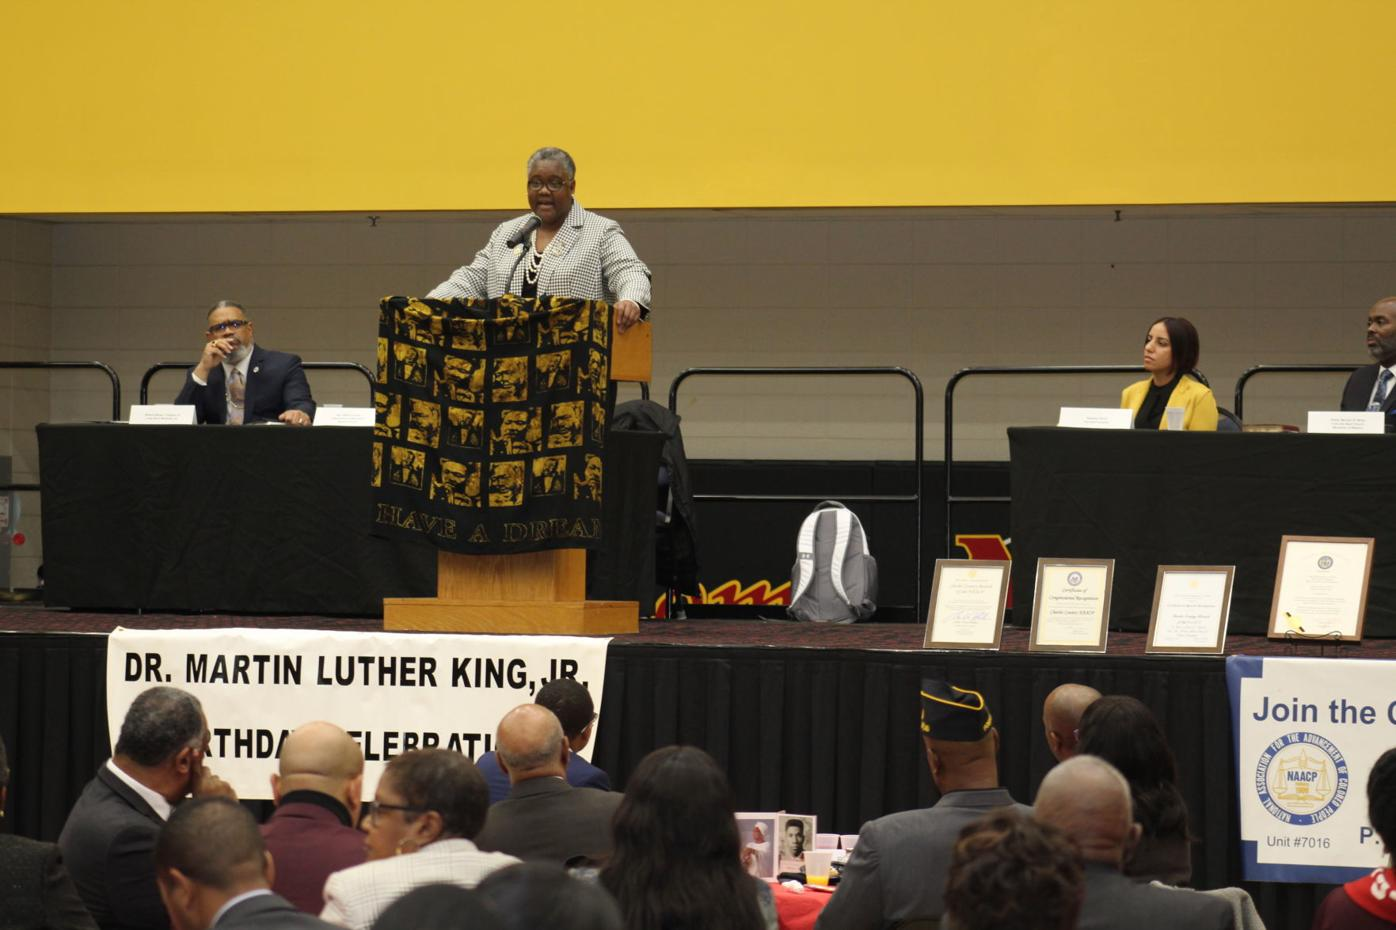 Hundreds gather at prayer breakfast to honor life, legacy of Martin Luther King Jr.